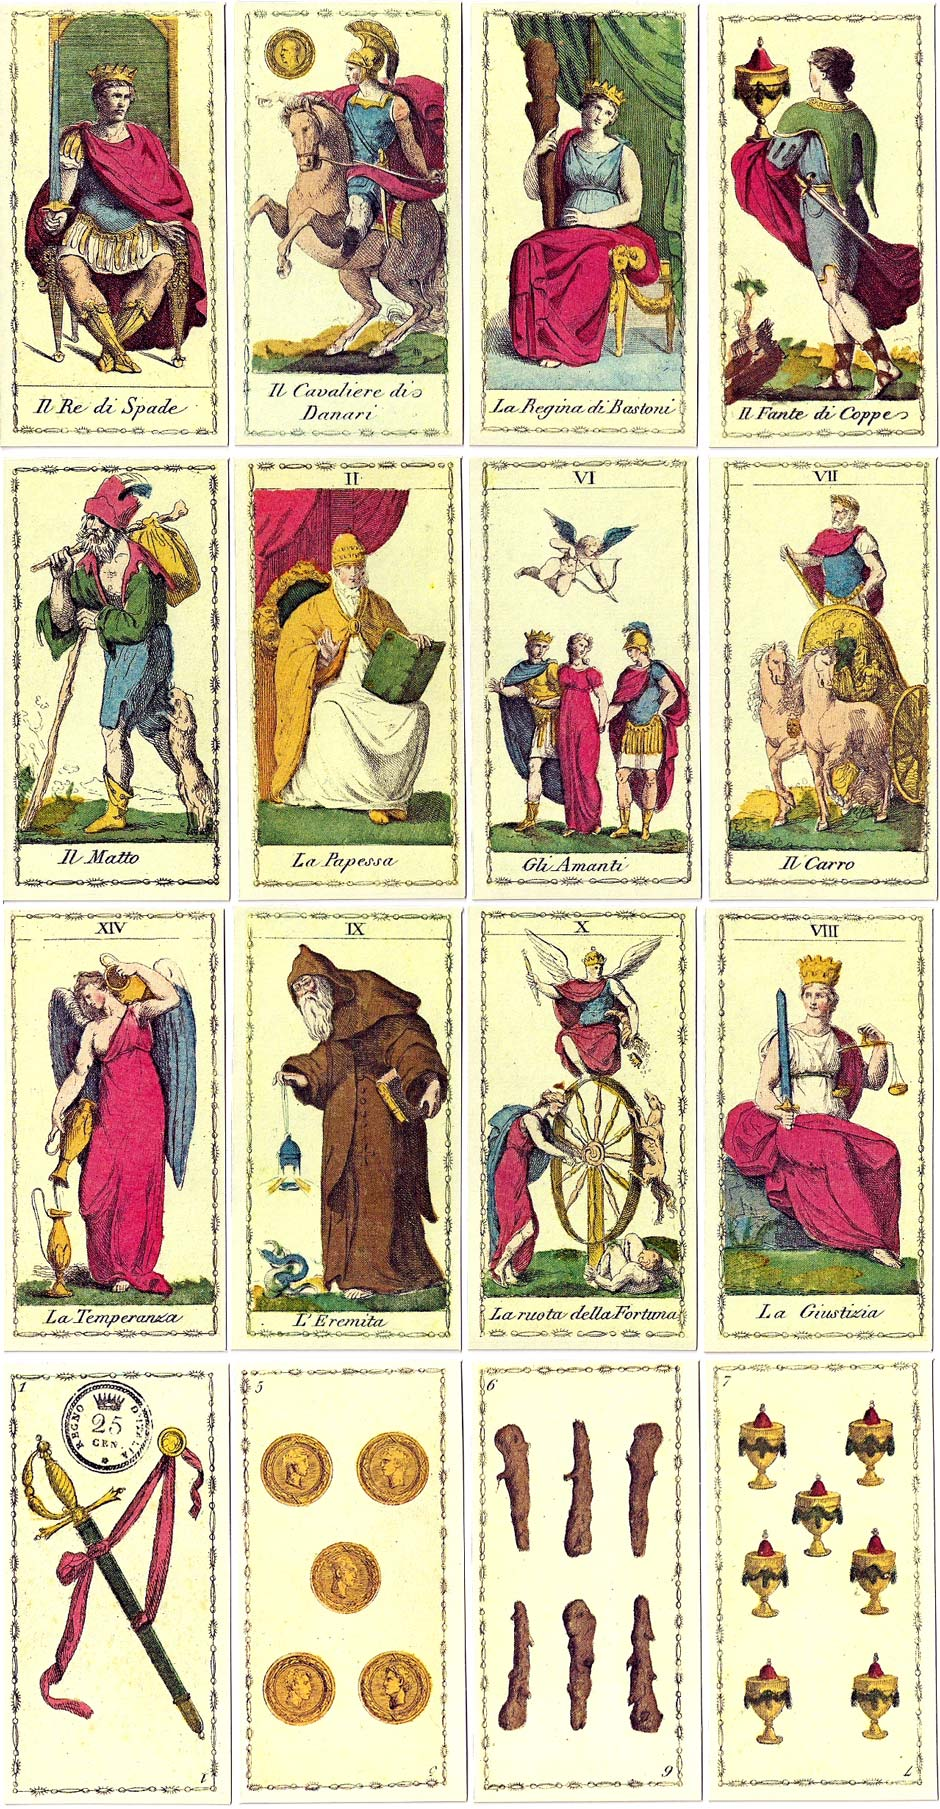 'Tarocco Neoclassico Italiano', based on an original engraved deck by Ferdinando Gumppenberg from c.1810